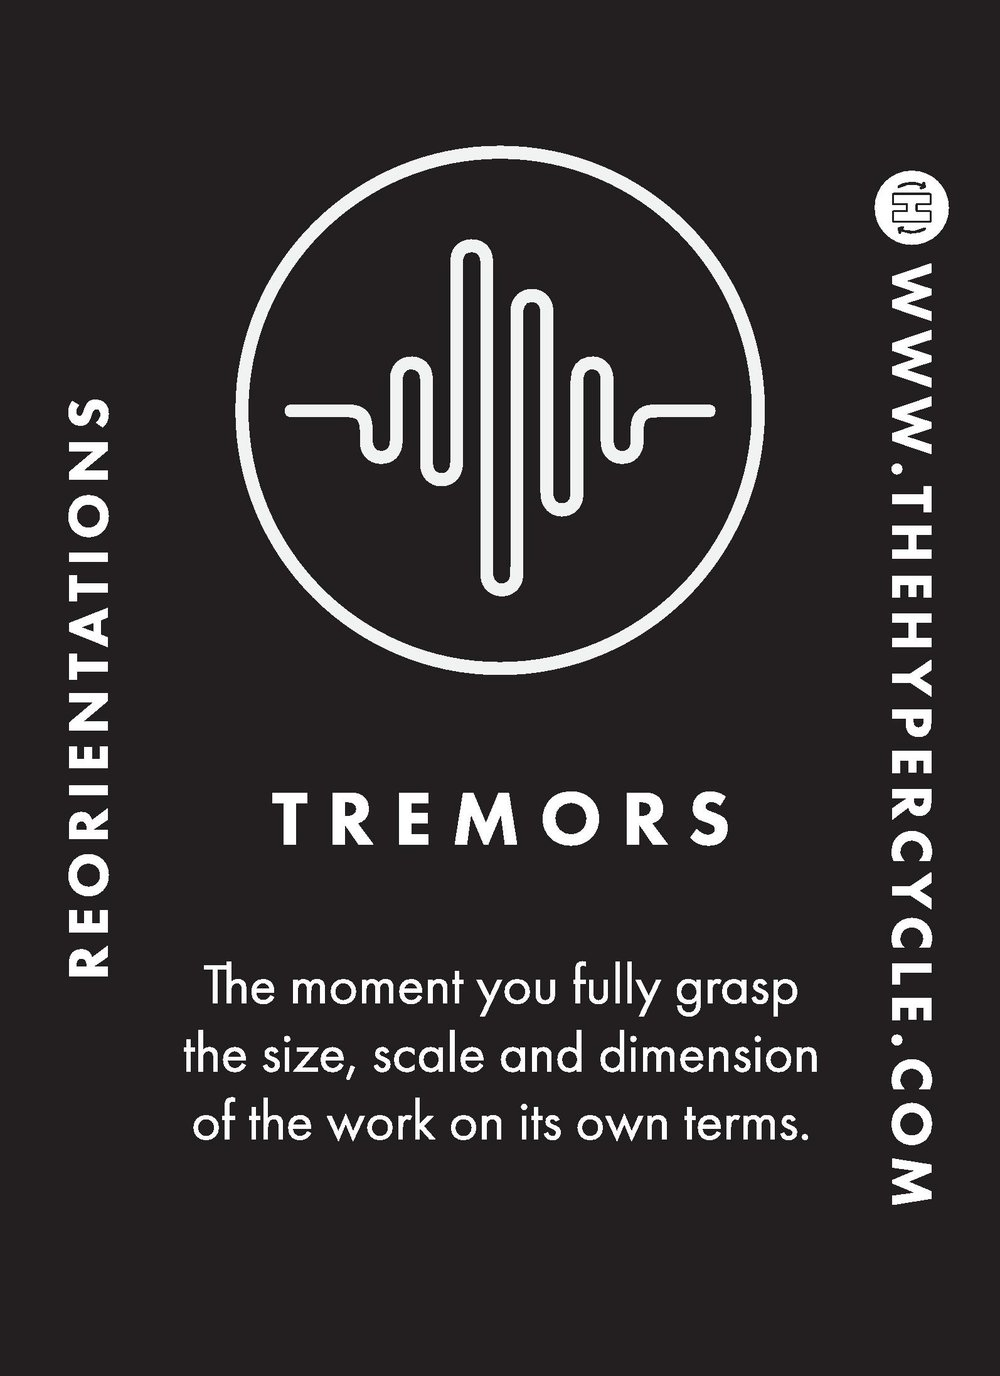 Tremors-page-001.jpg